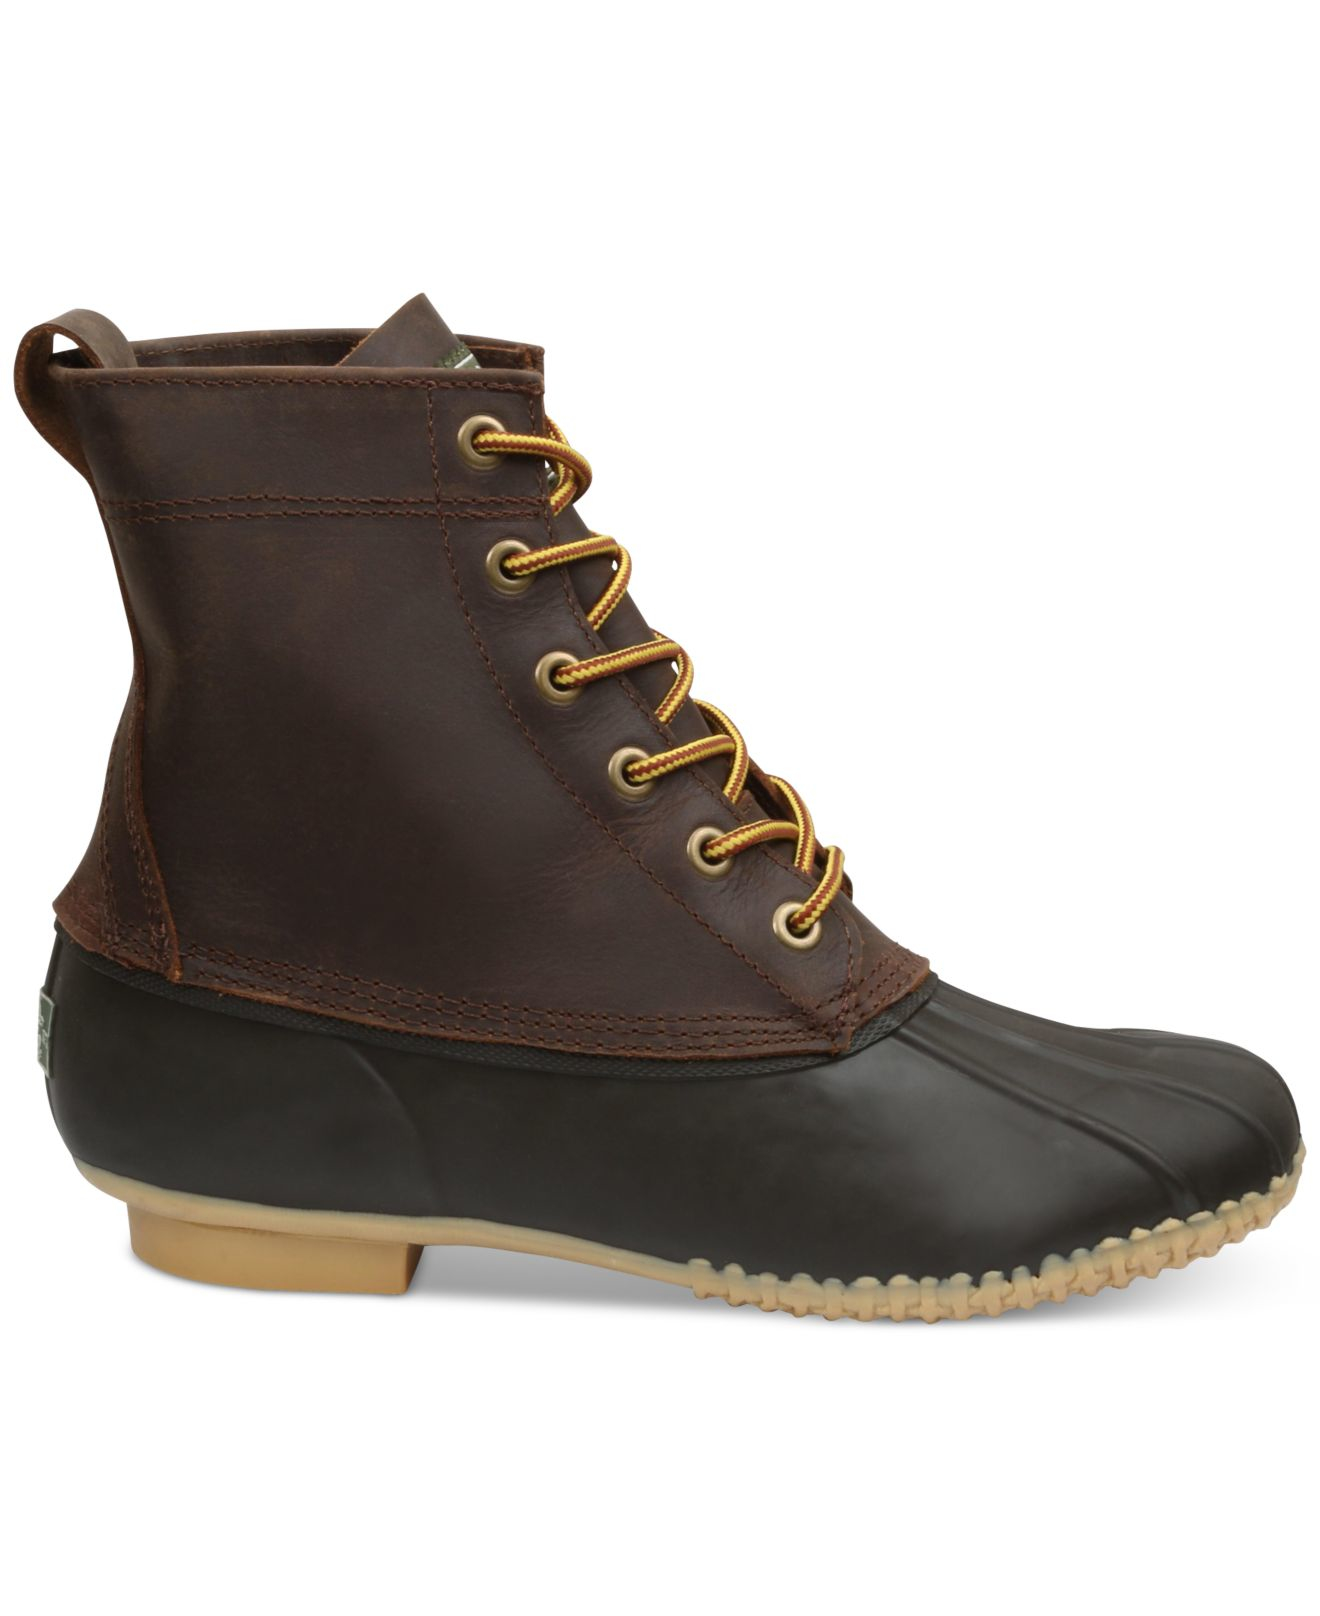 g h bass co blizzard lace up waterproof boots in brown